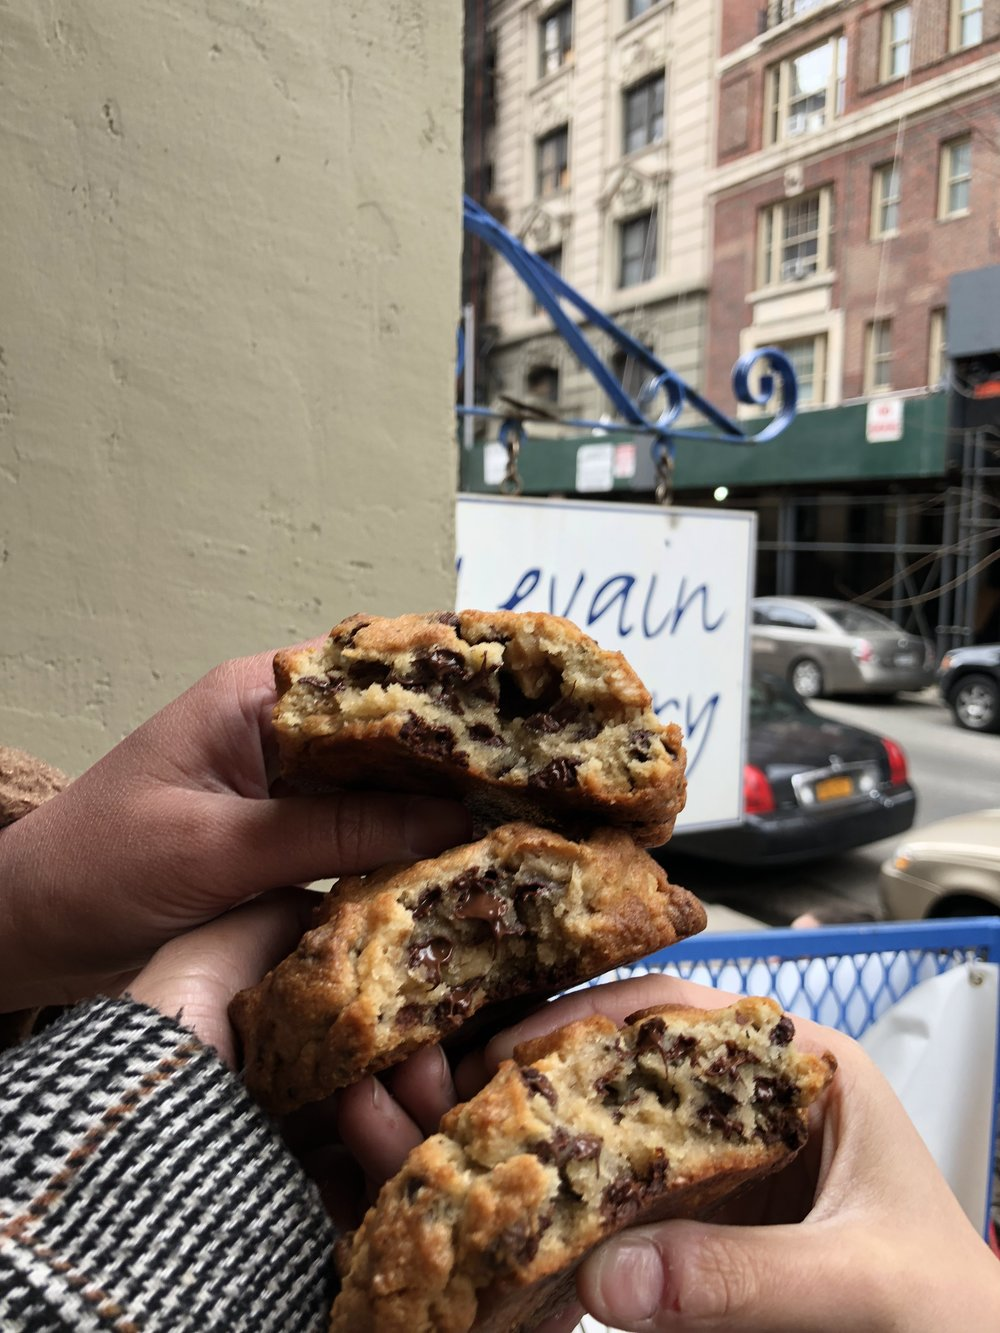 "LEVAIN BAKERY - If you love cookies and you don't mind waiting in line for an hour or two for some ooey gooey cookies, and ""the best cookies in NY"" this is your place.P.S Wrap up warm, wear some comfy footwear and grab your favourite partners in crime to make the time go faster!"